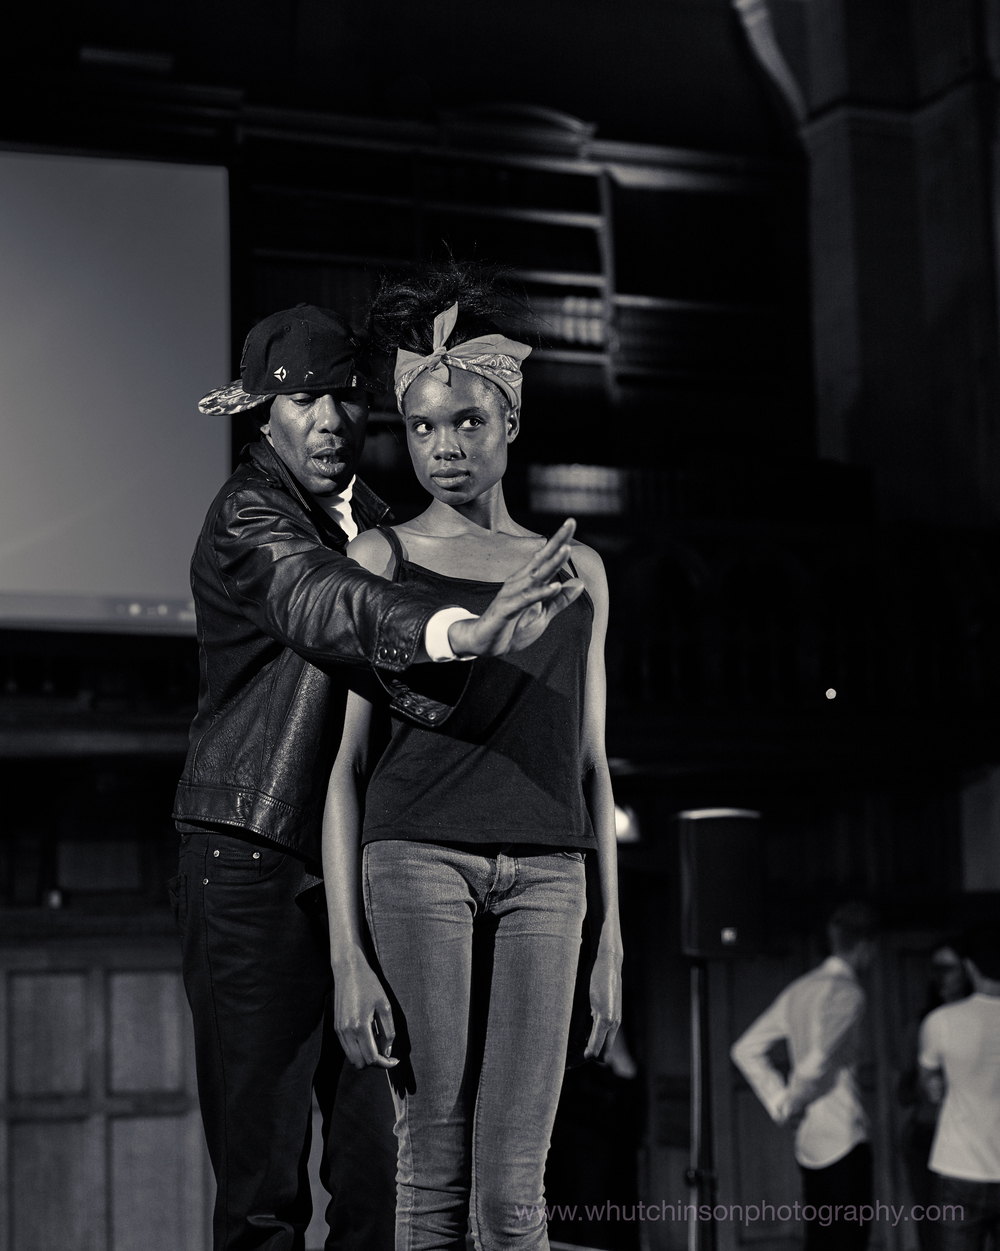 Croydon Fashion Show _01.jpg